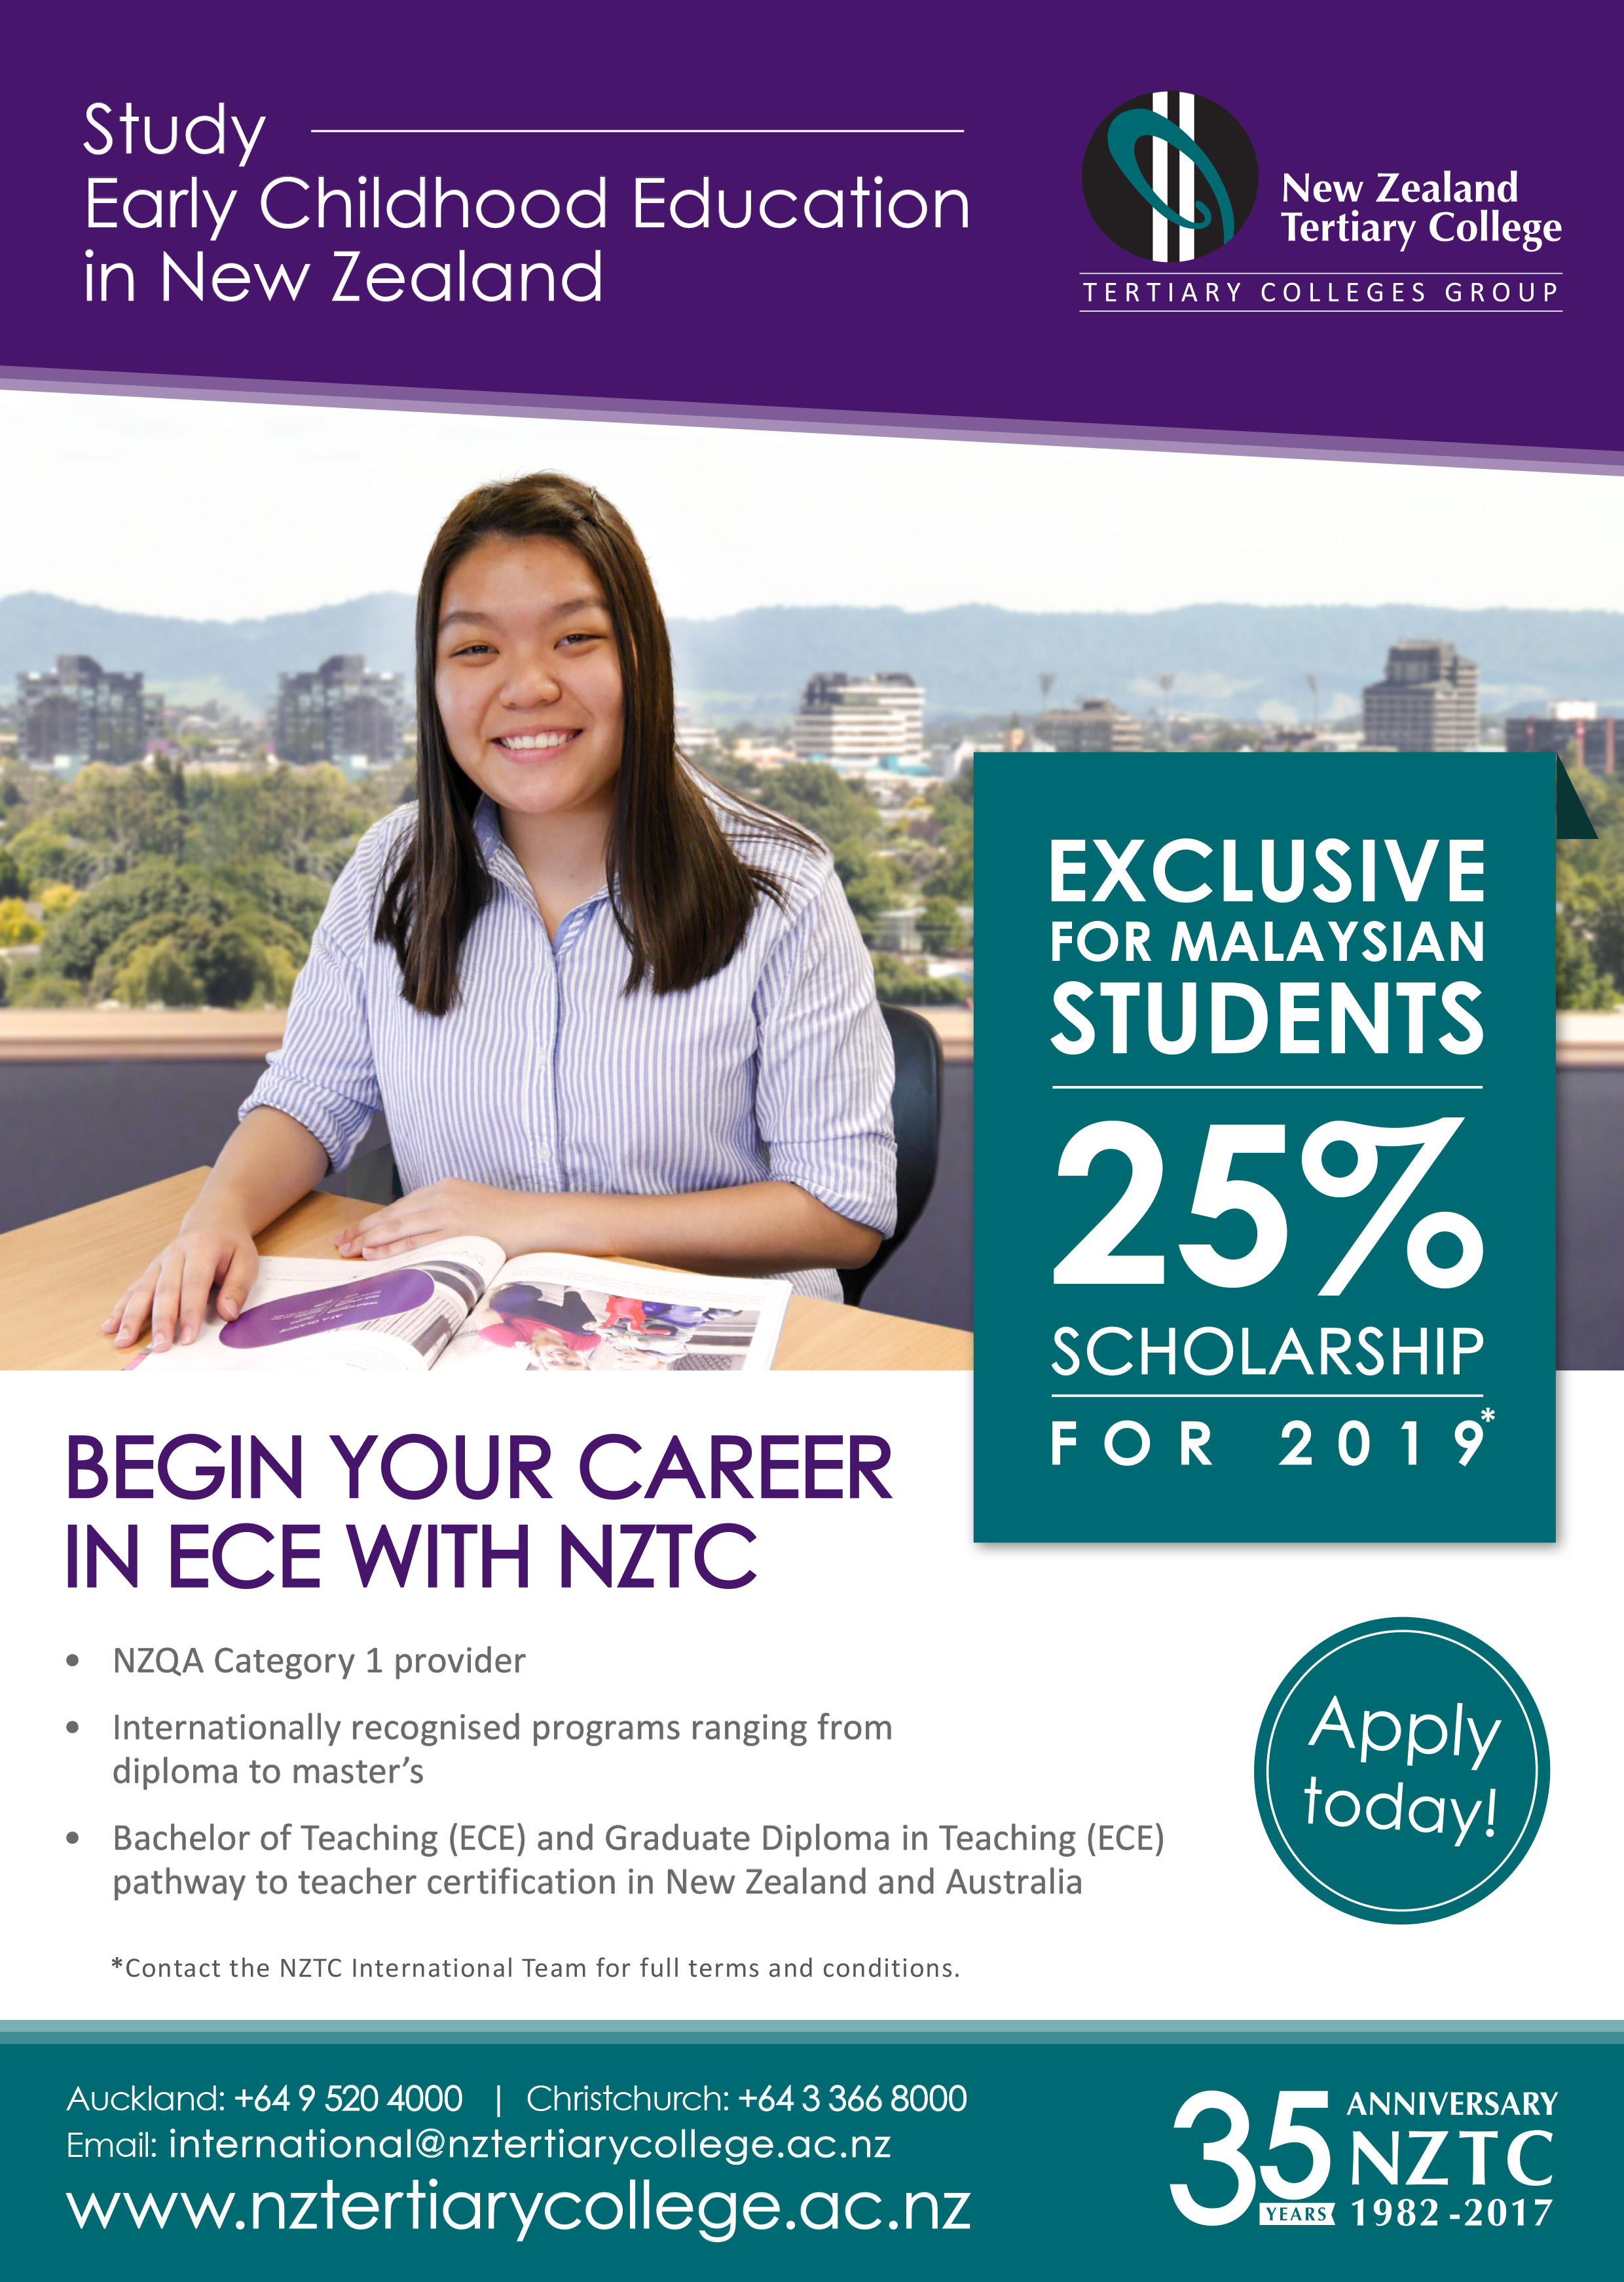 New Zealand Tertiary College 25 Scholarship 1st Year International Study Fees For Malaysian Students Raven Education Consultant Services Best Education Consultant In Kuching Sarawak Malaysia